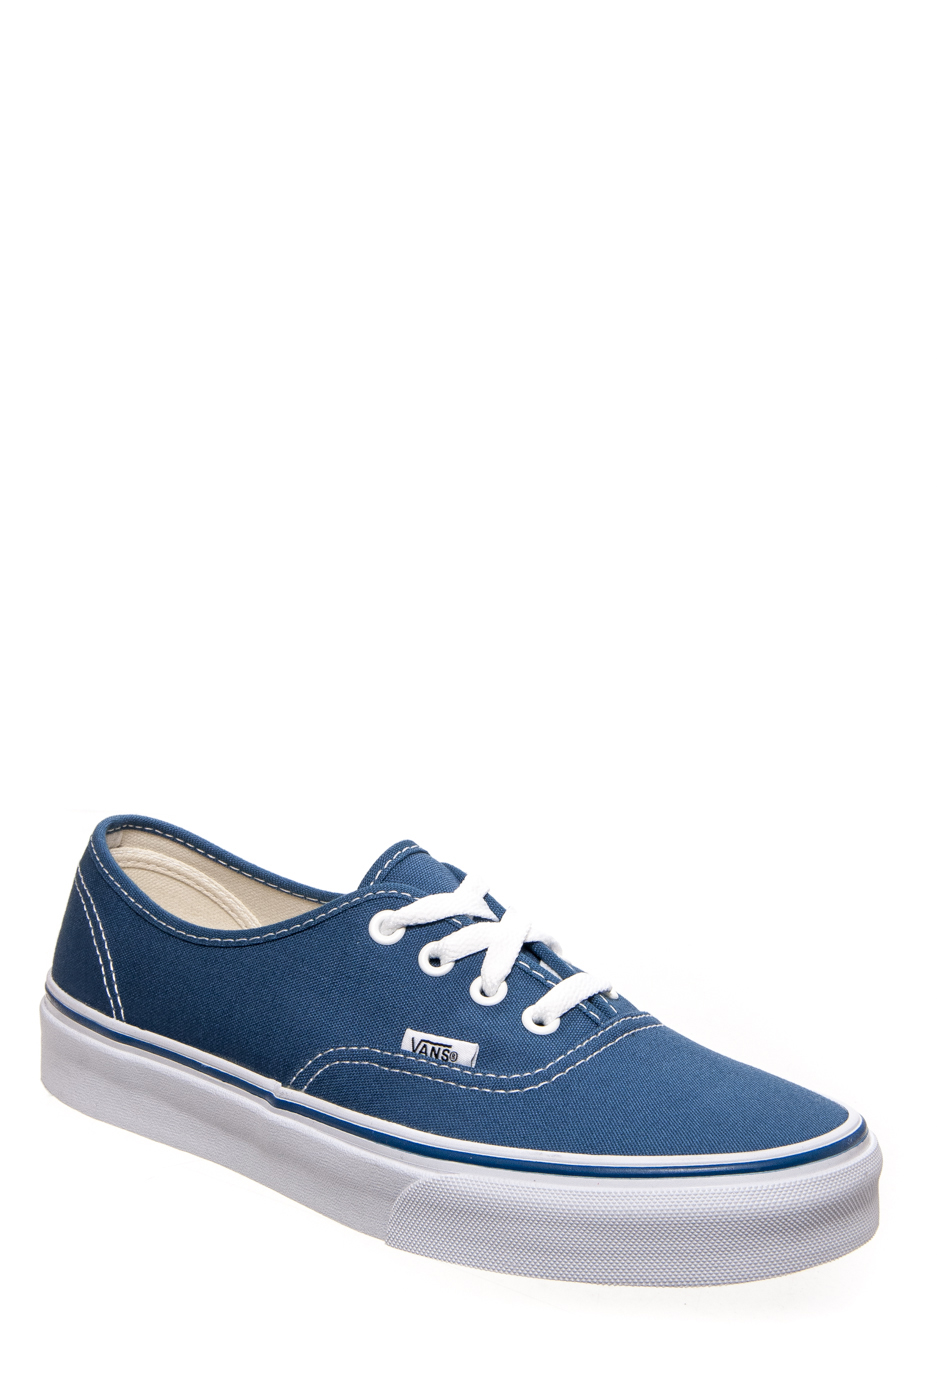 Vans Unisex Authentic Sneakers - Navy